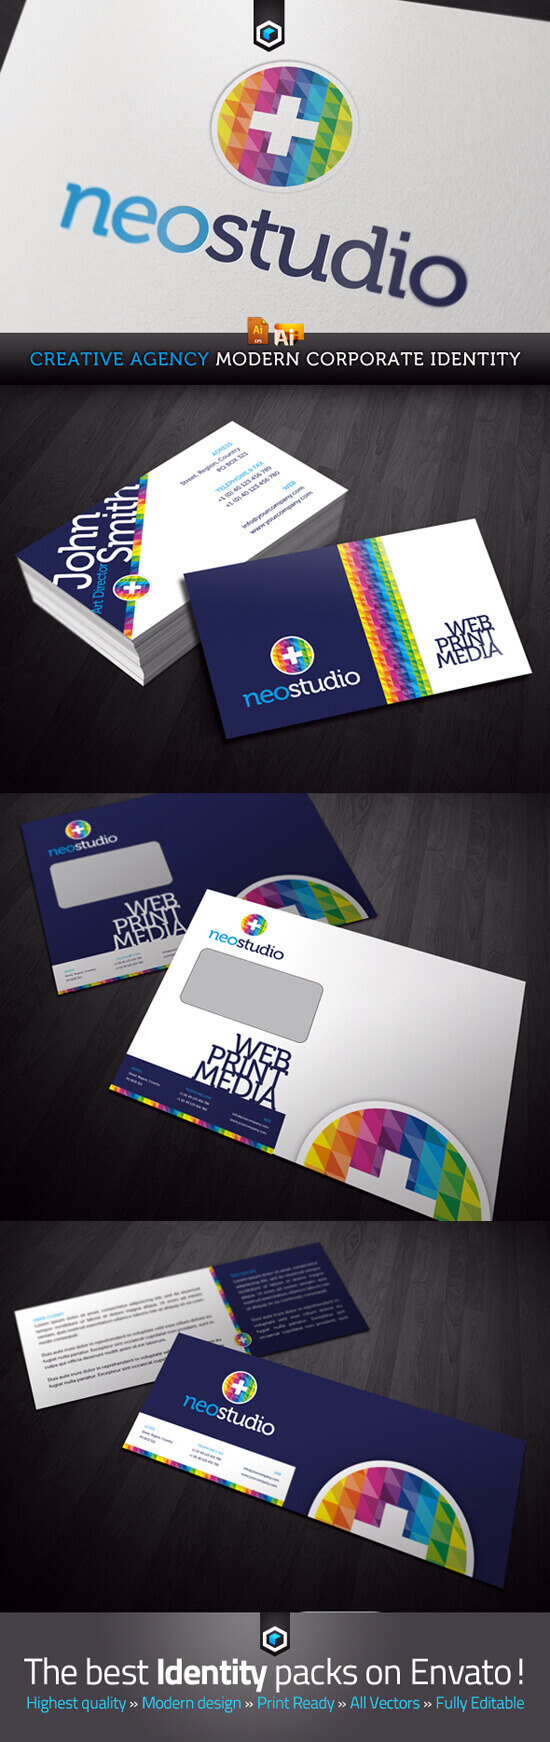 RW Creative Agency Modern Corporate Identity by Reclameworks